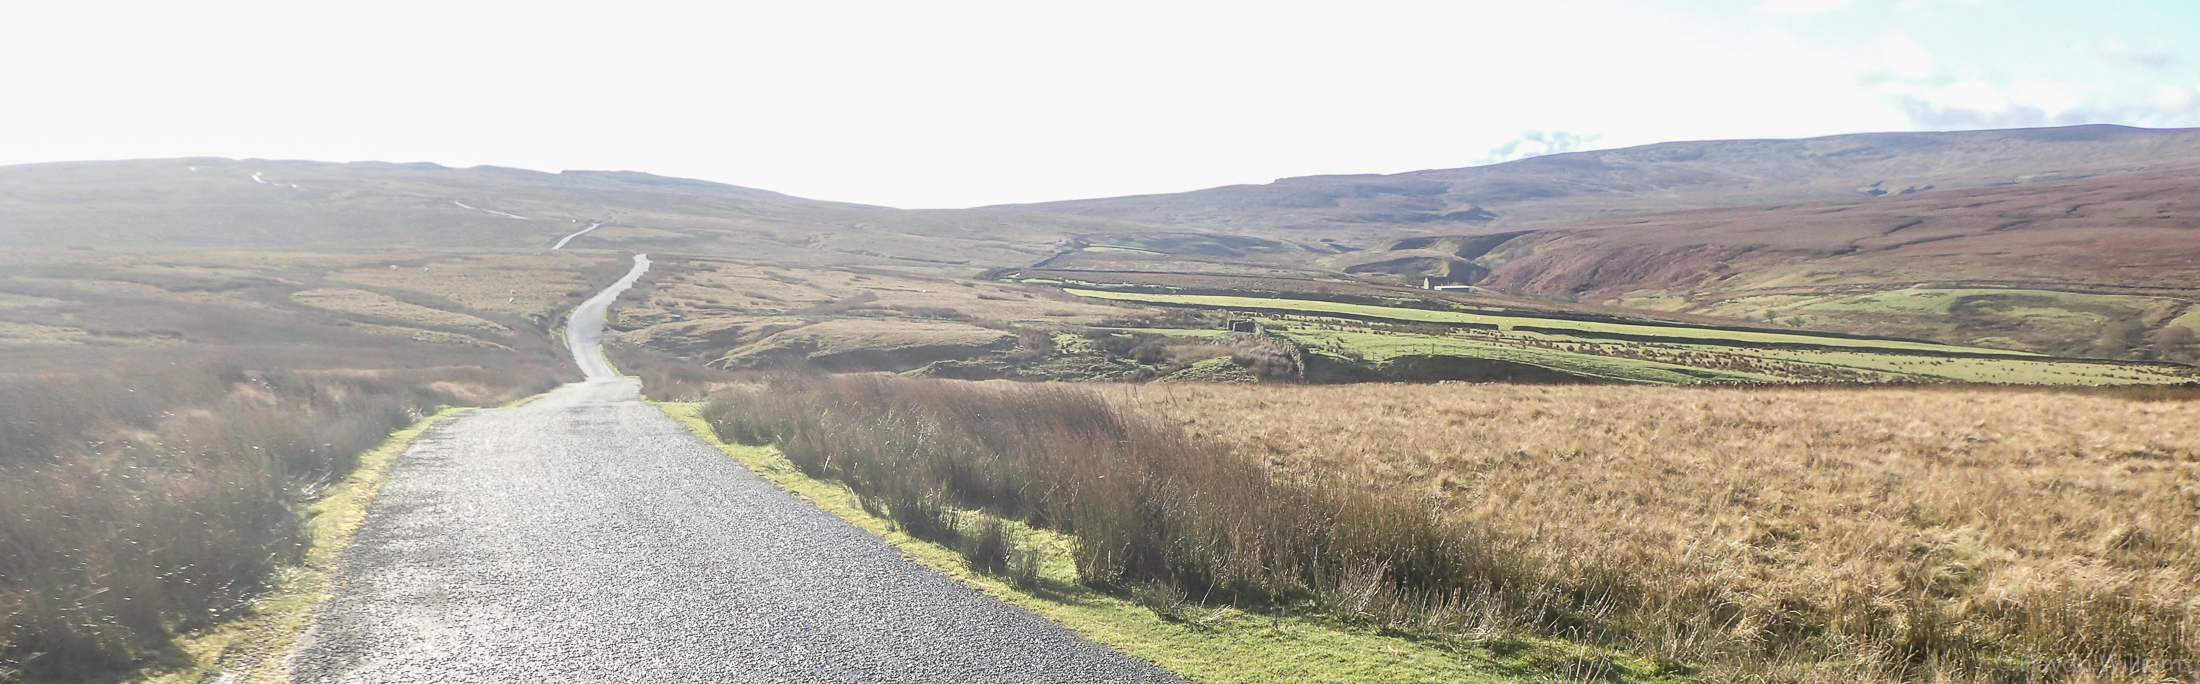 Awesome road on the way to Gisburn. © Haydn Williams 2017